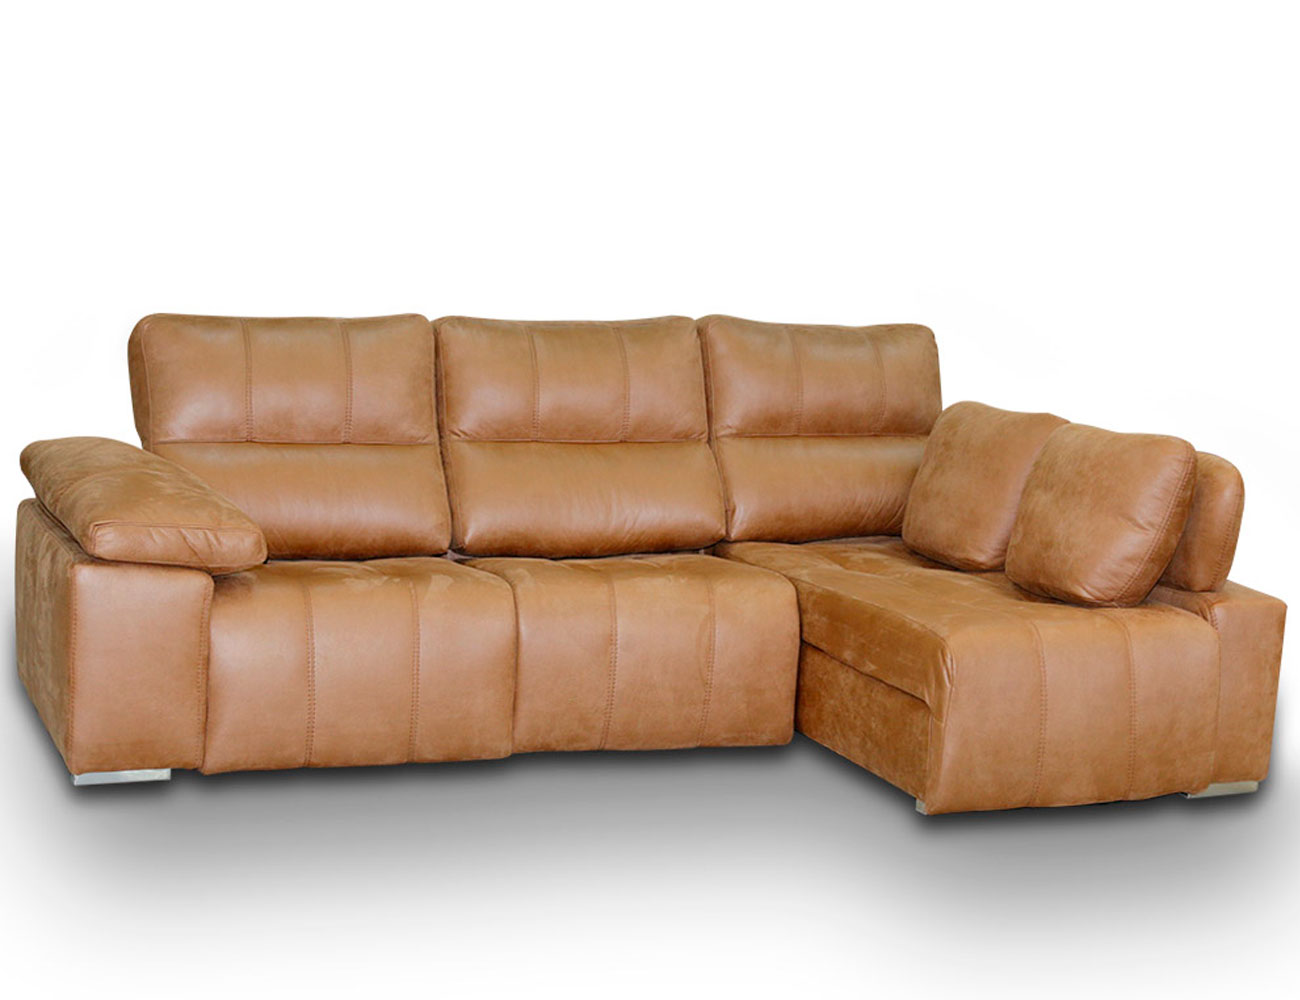 Sofa chaiselongue relax 2 motores anti manchas40